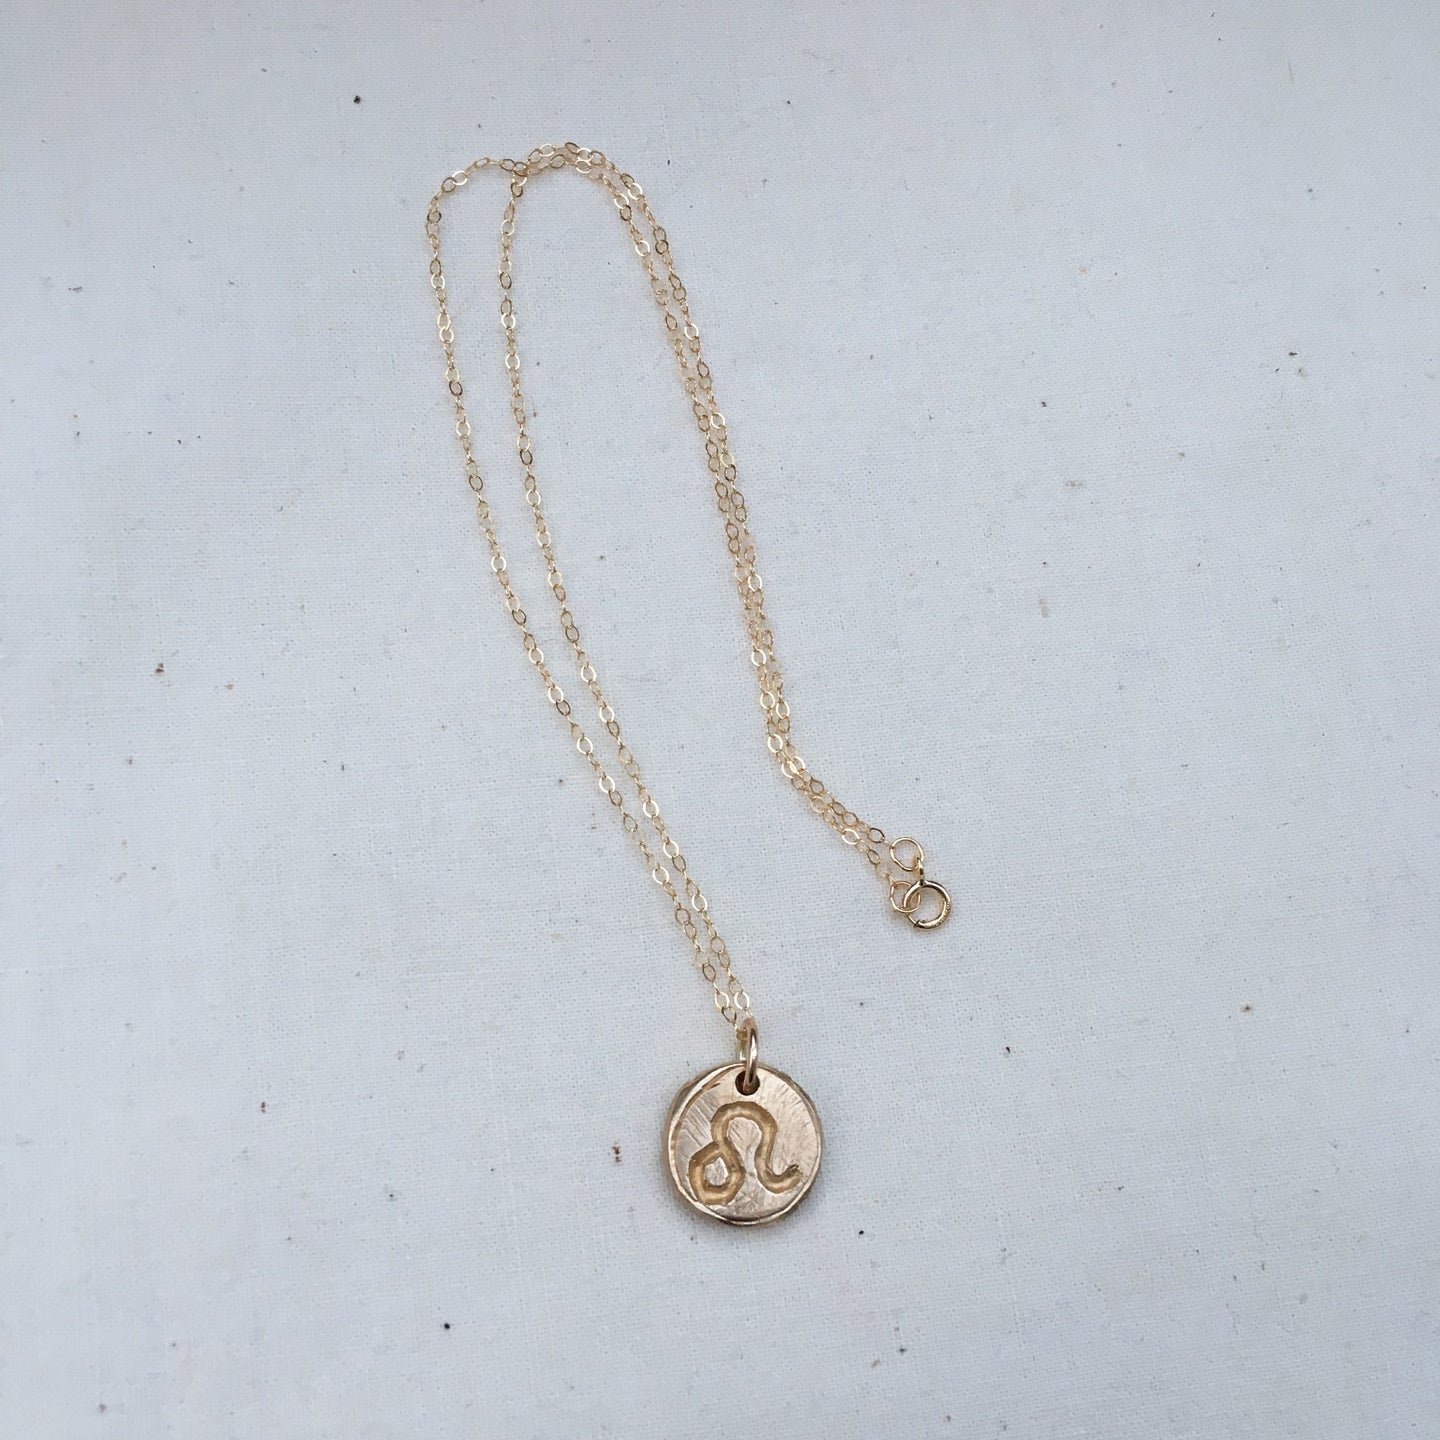 LEO SUN SIGN Reversible Coin Necklace Solid Bronze